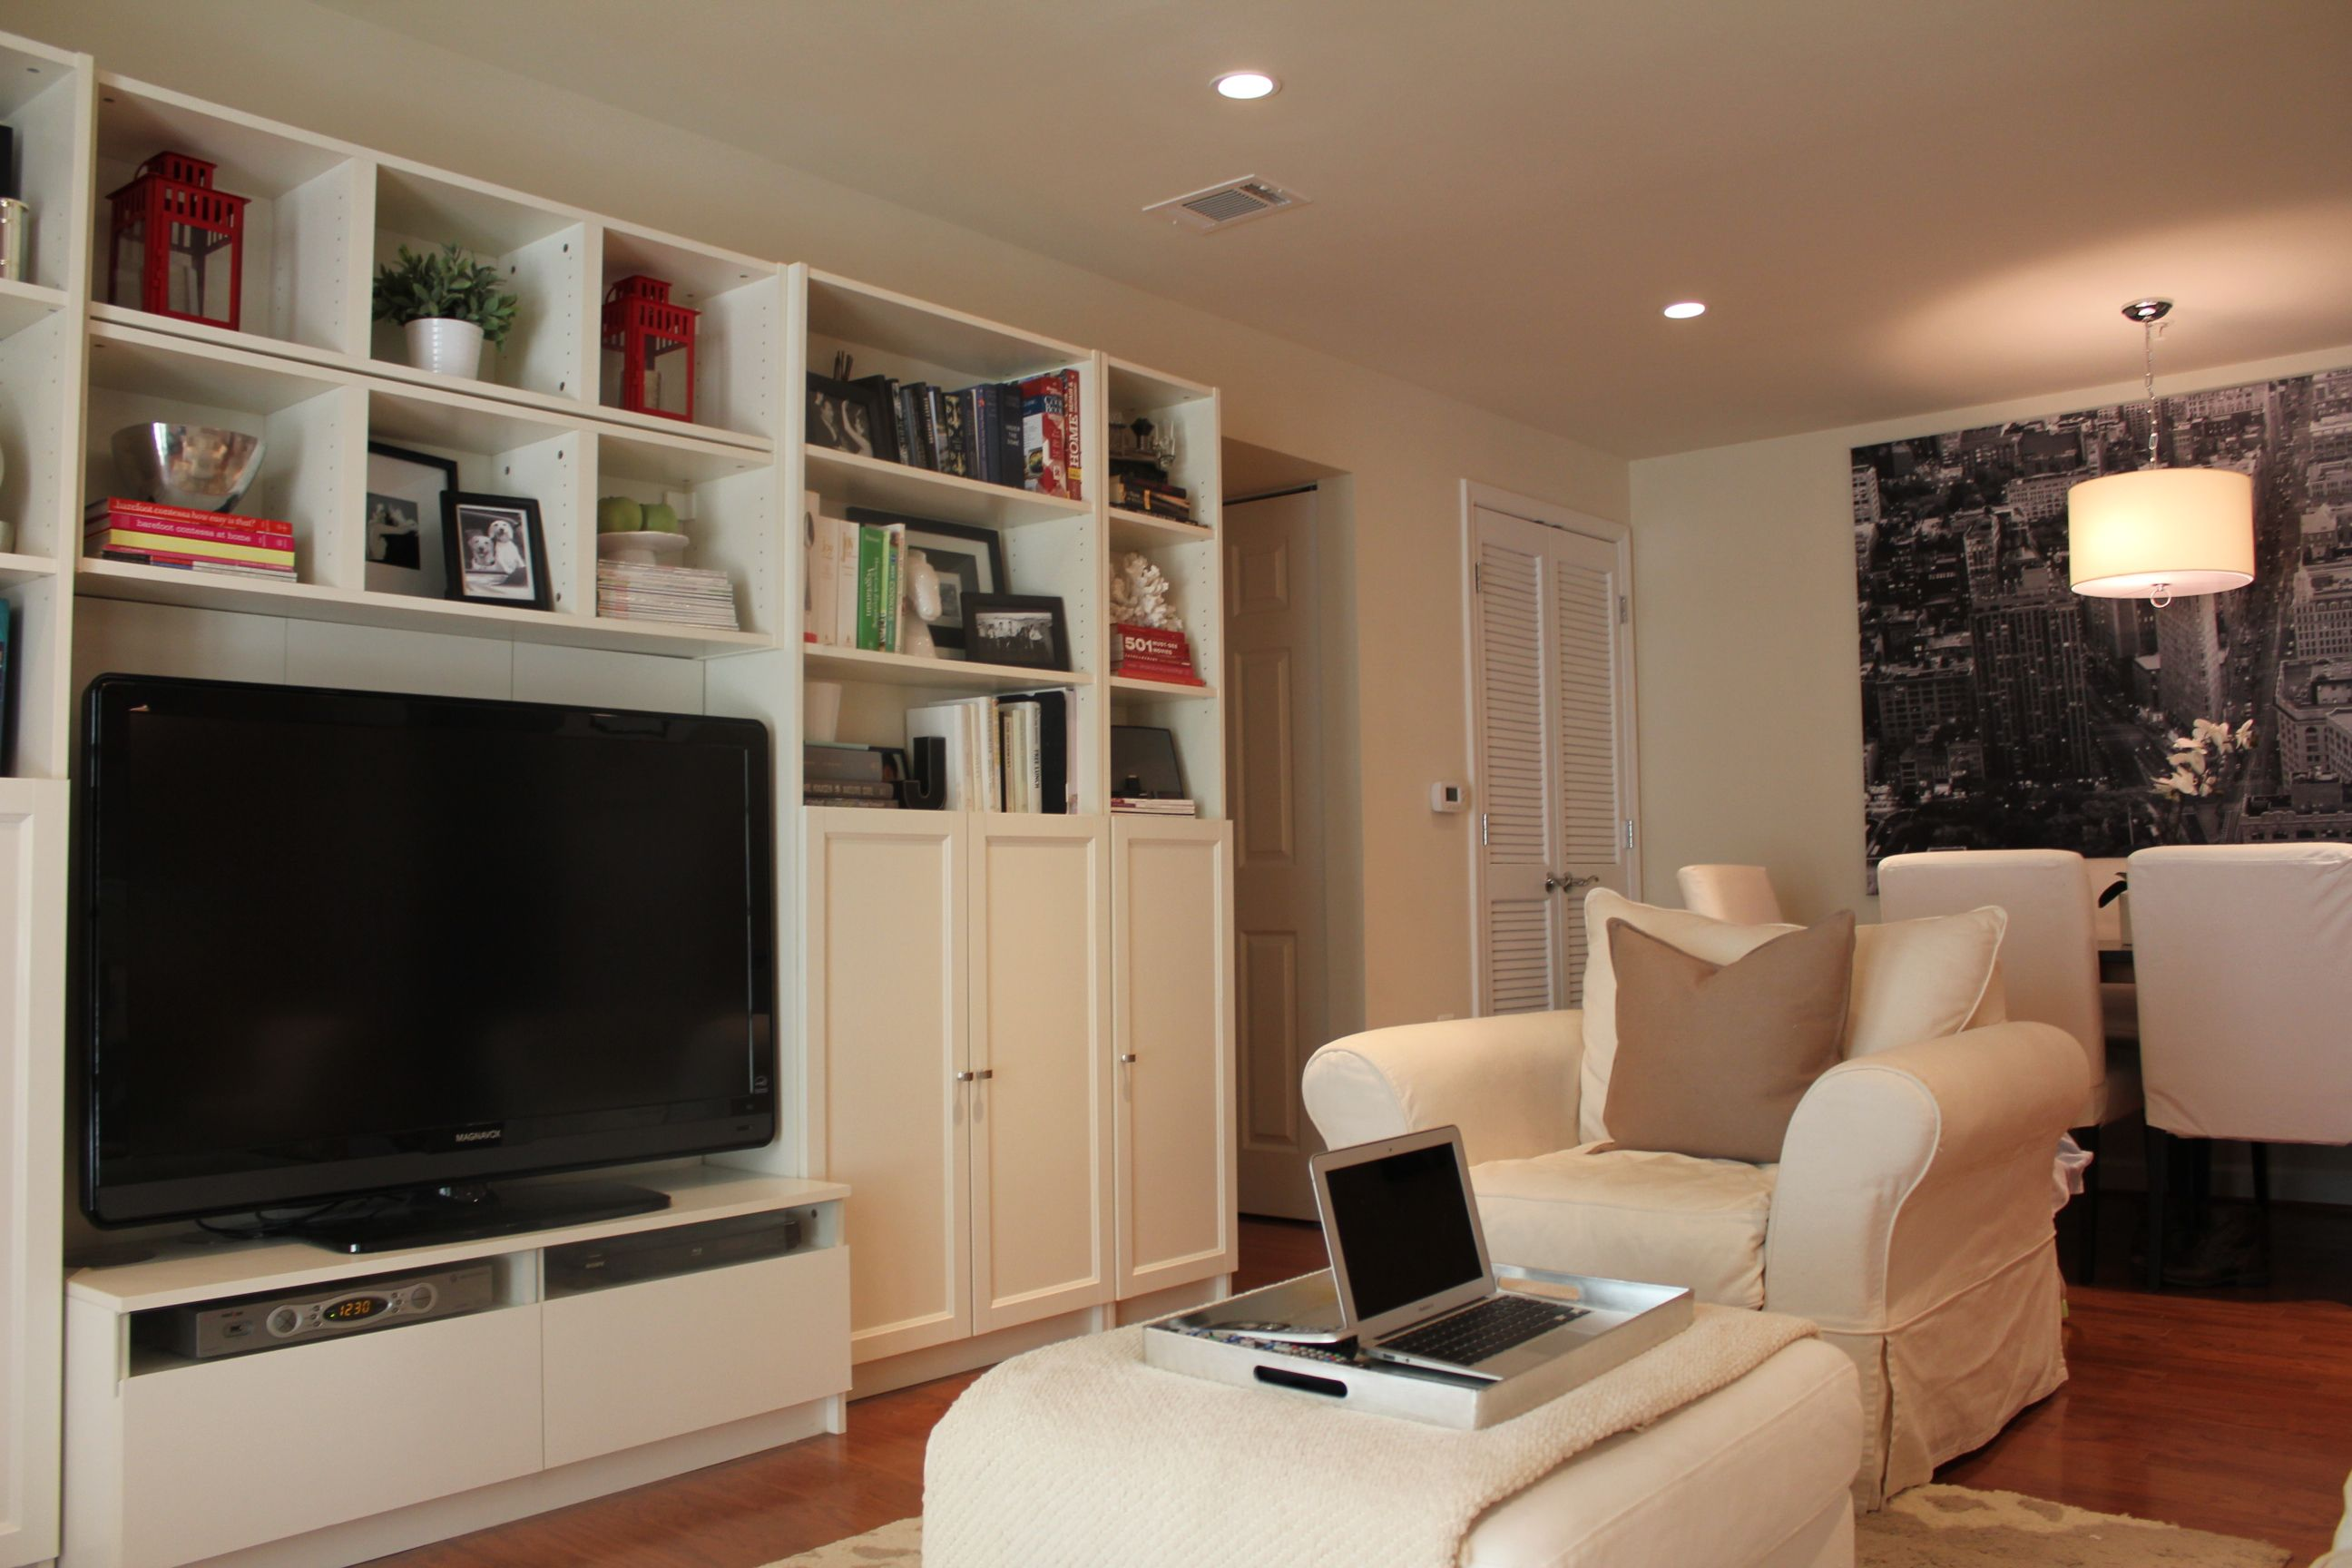 around built eekenners tv bookcase in of photos fireplace trendy wallpaper hd bookcases cabinets lovely cabinet